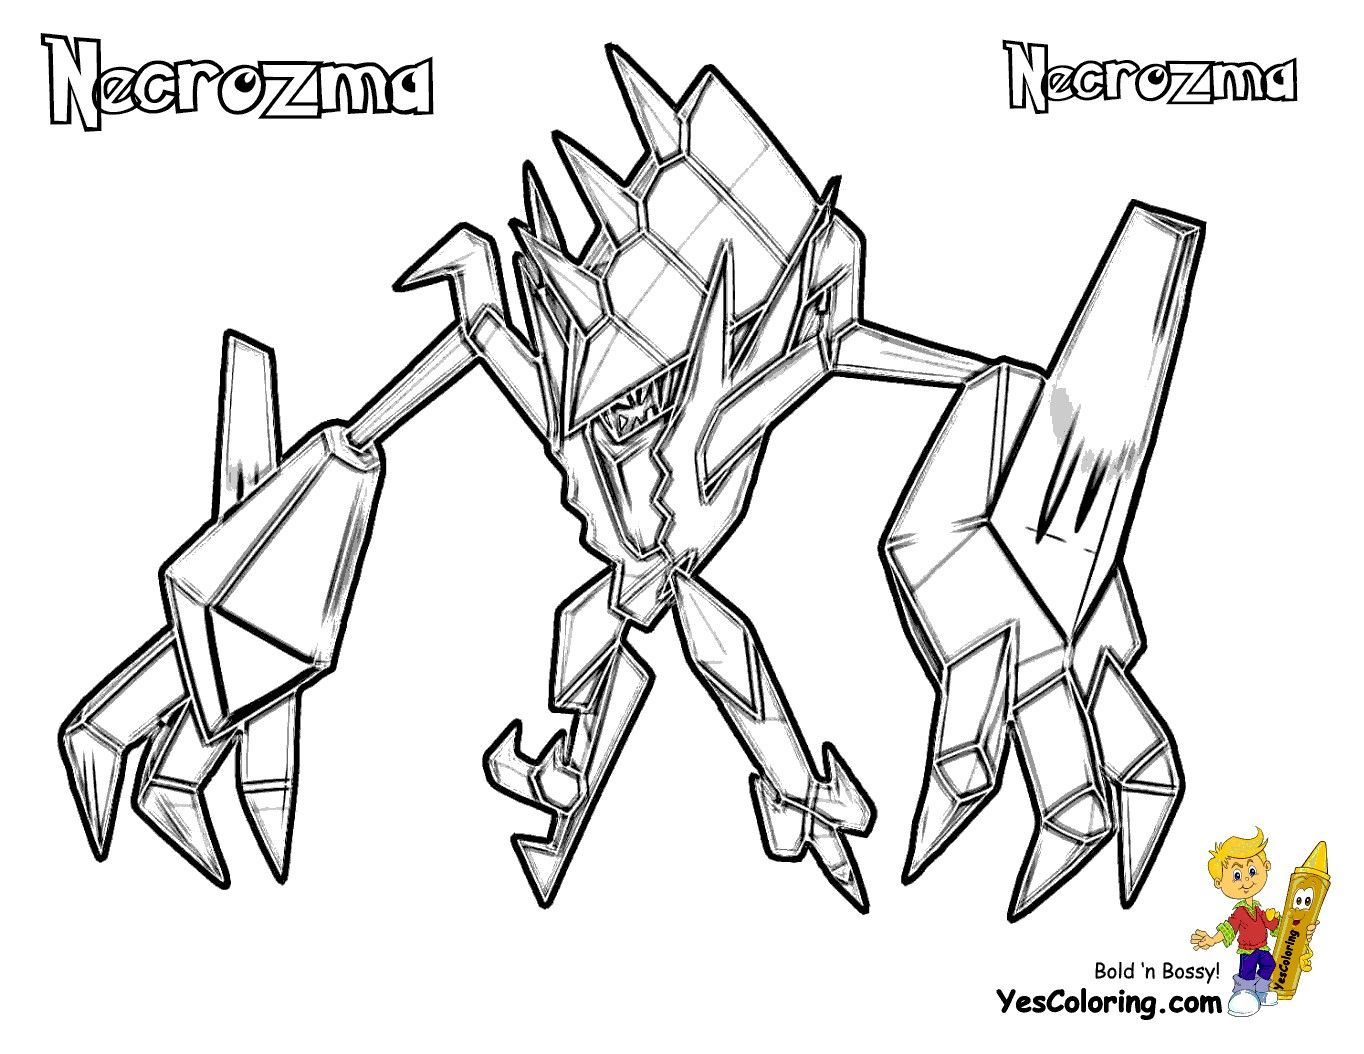 Pokemon Coloring Pages Necrozma Of Pokemon Coloring Pages Necrozma Pokemon Coloring Pages Necrozma Pokemon Coloring Moon Coloring Pages Cartoon Coloring Pages